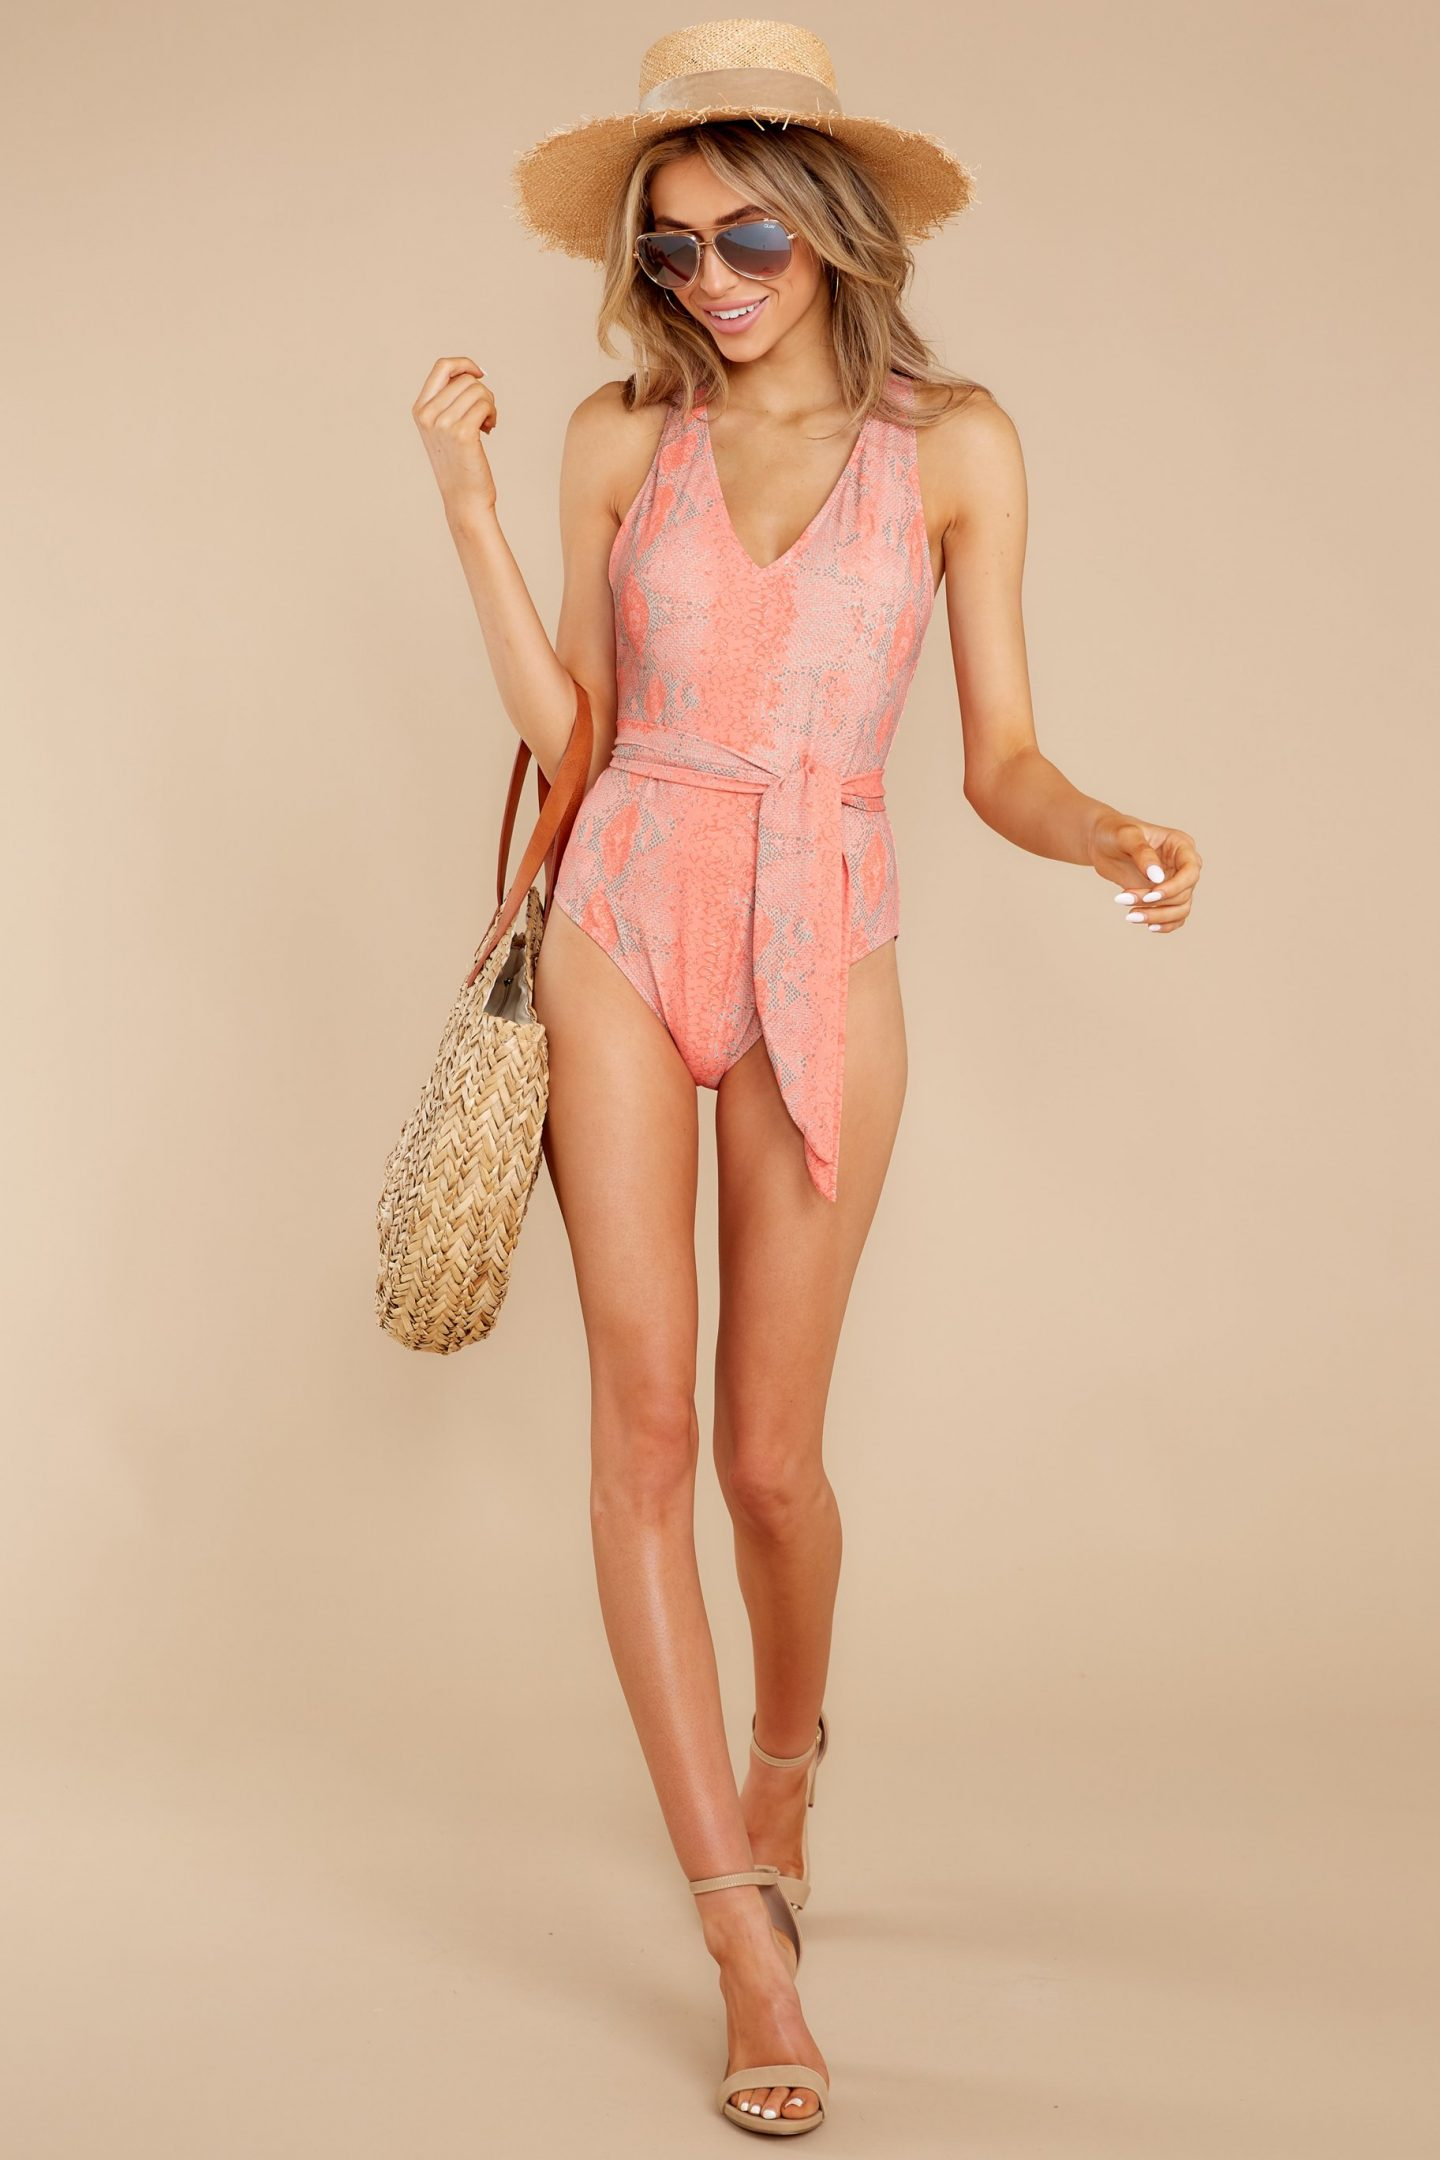 Coral one piece swimsuit outfit